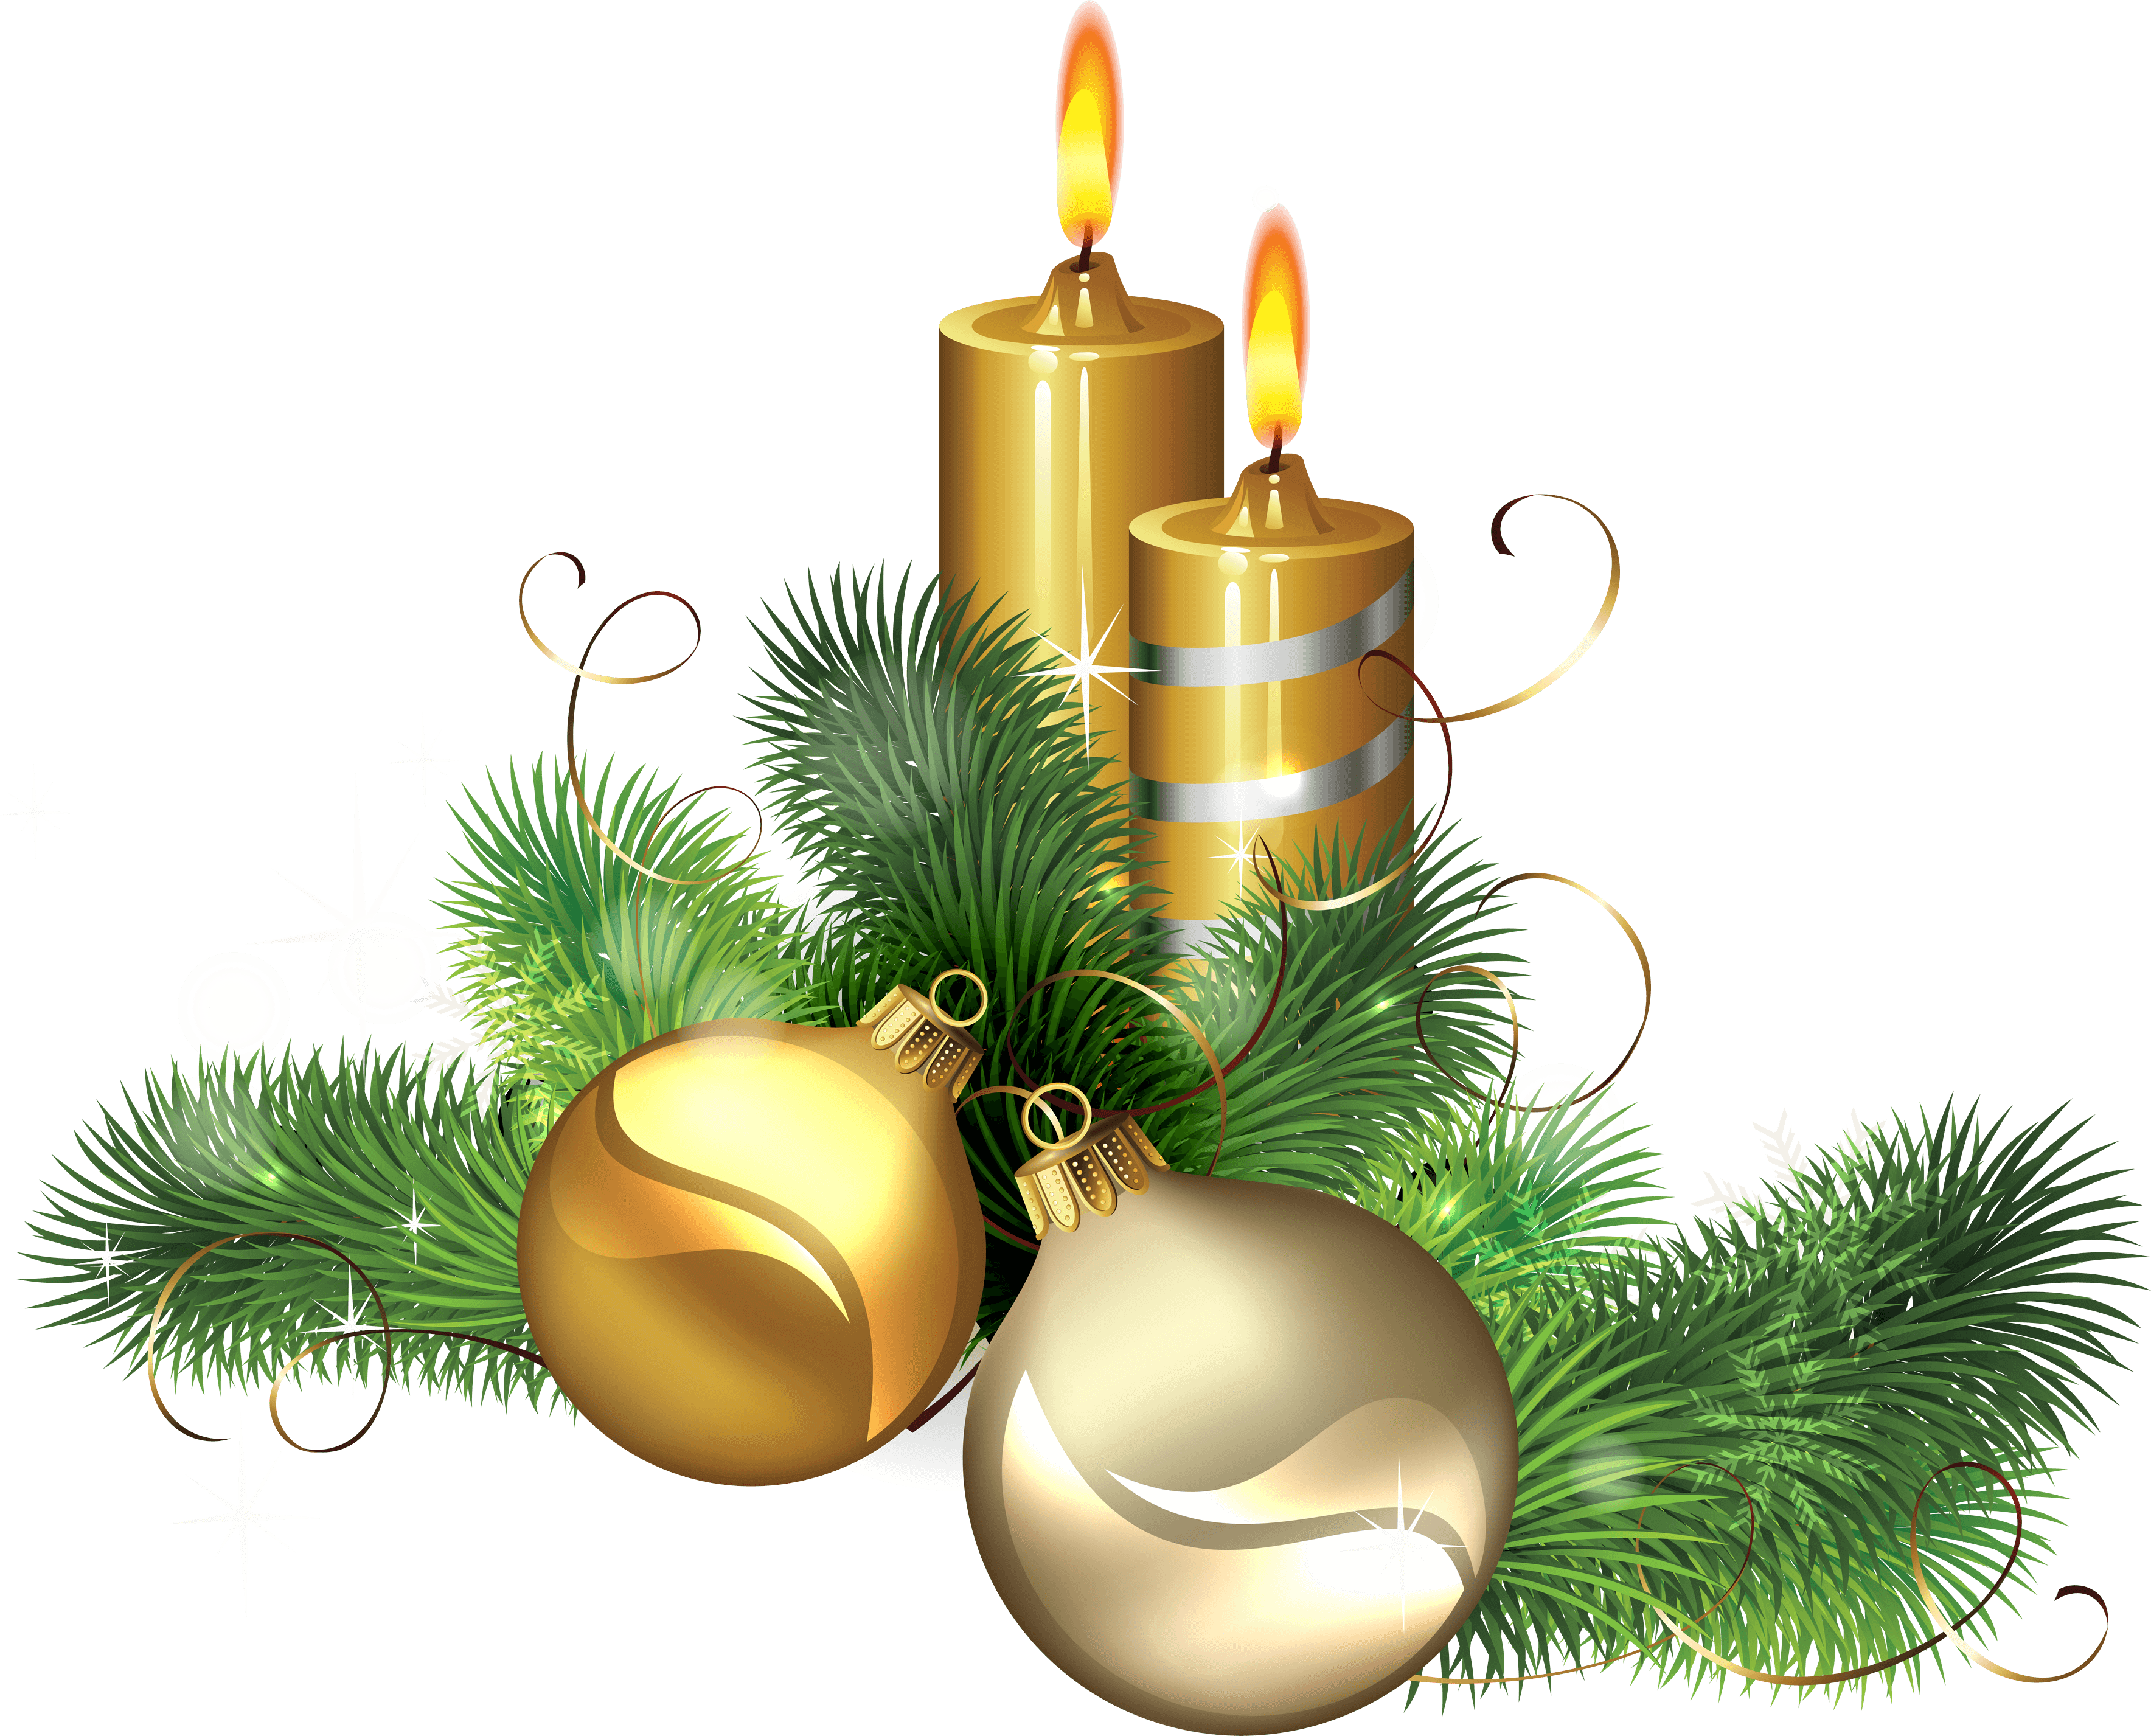 Glitter clipart gold bubble. Excellent images of christmas